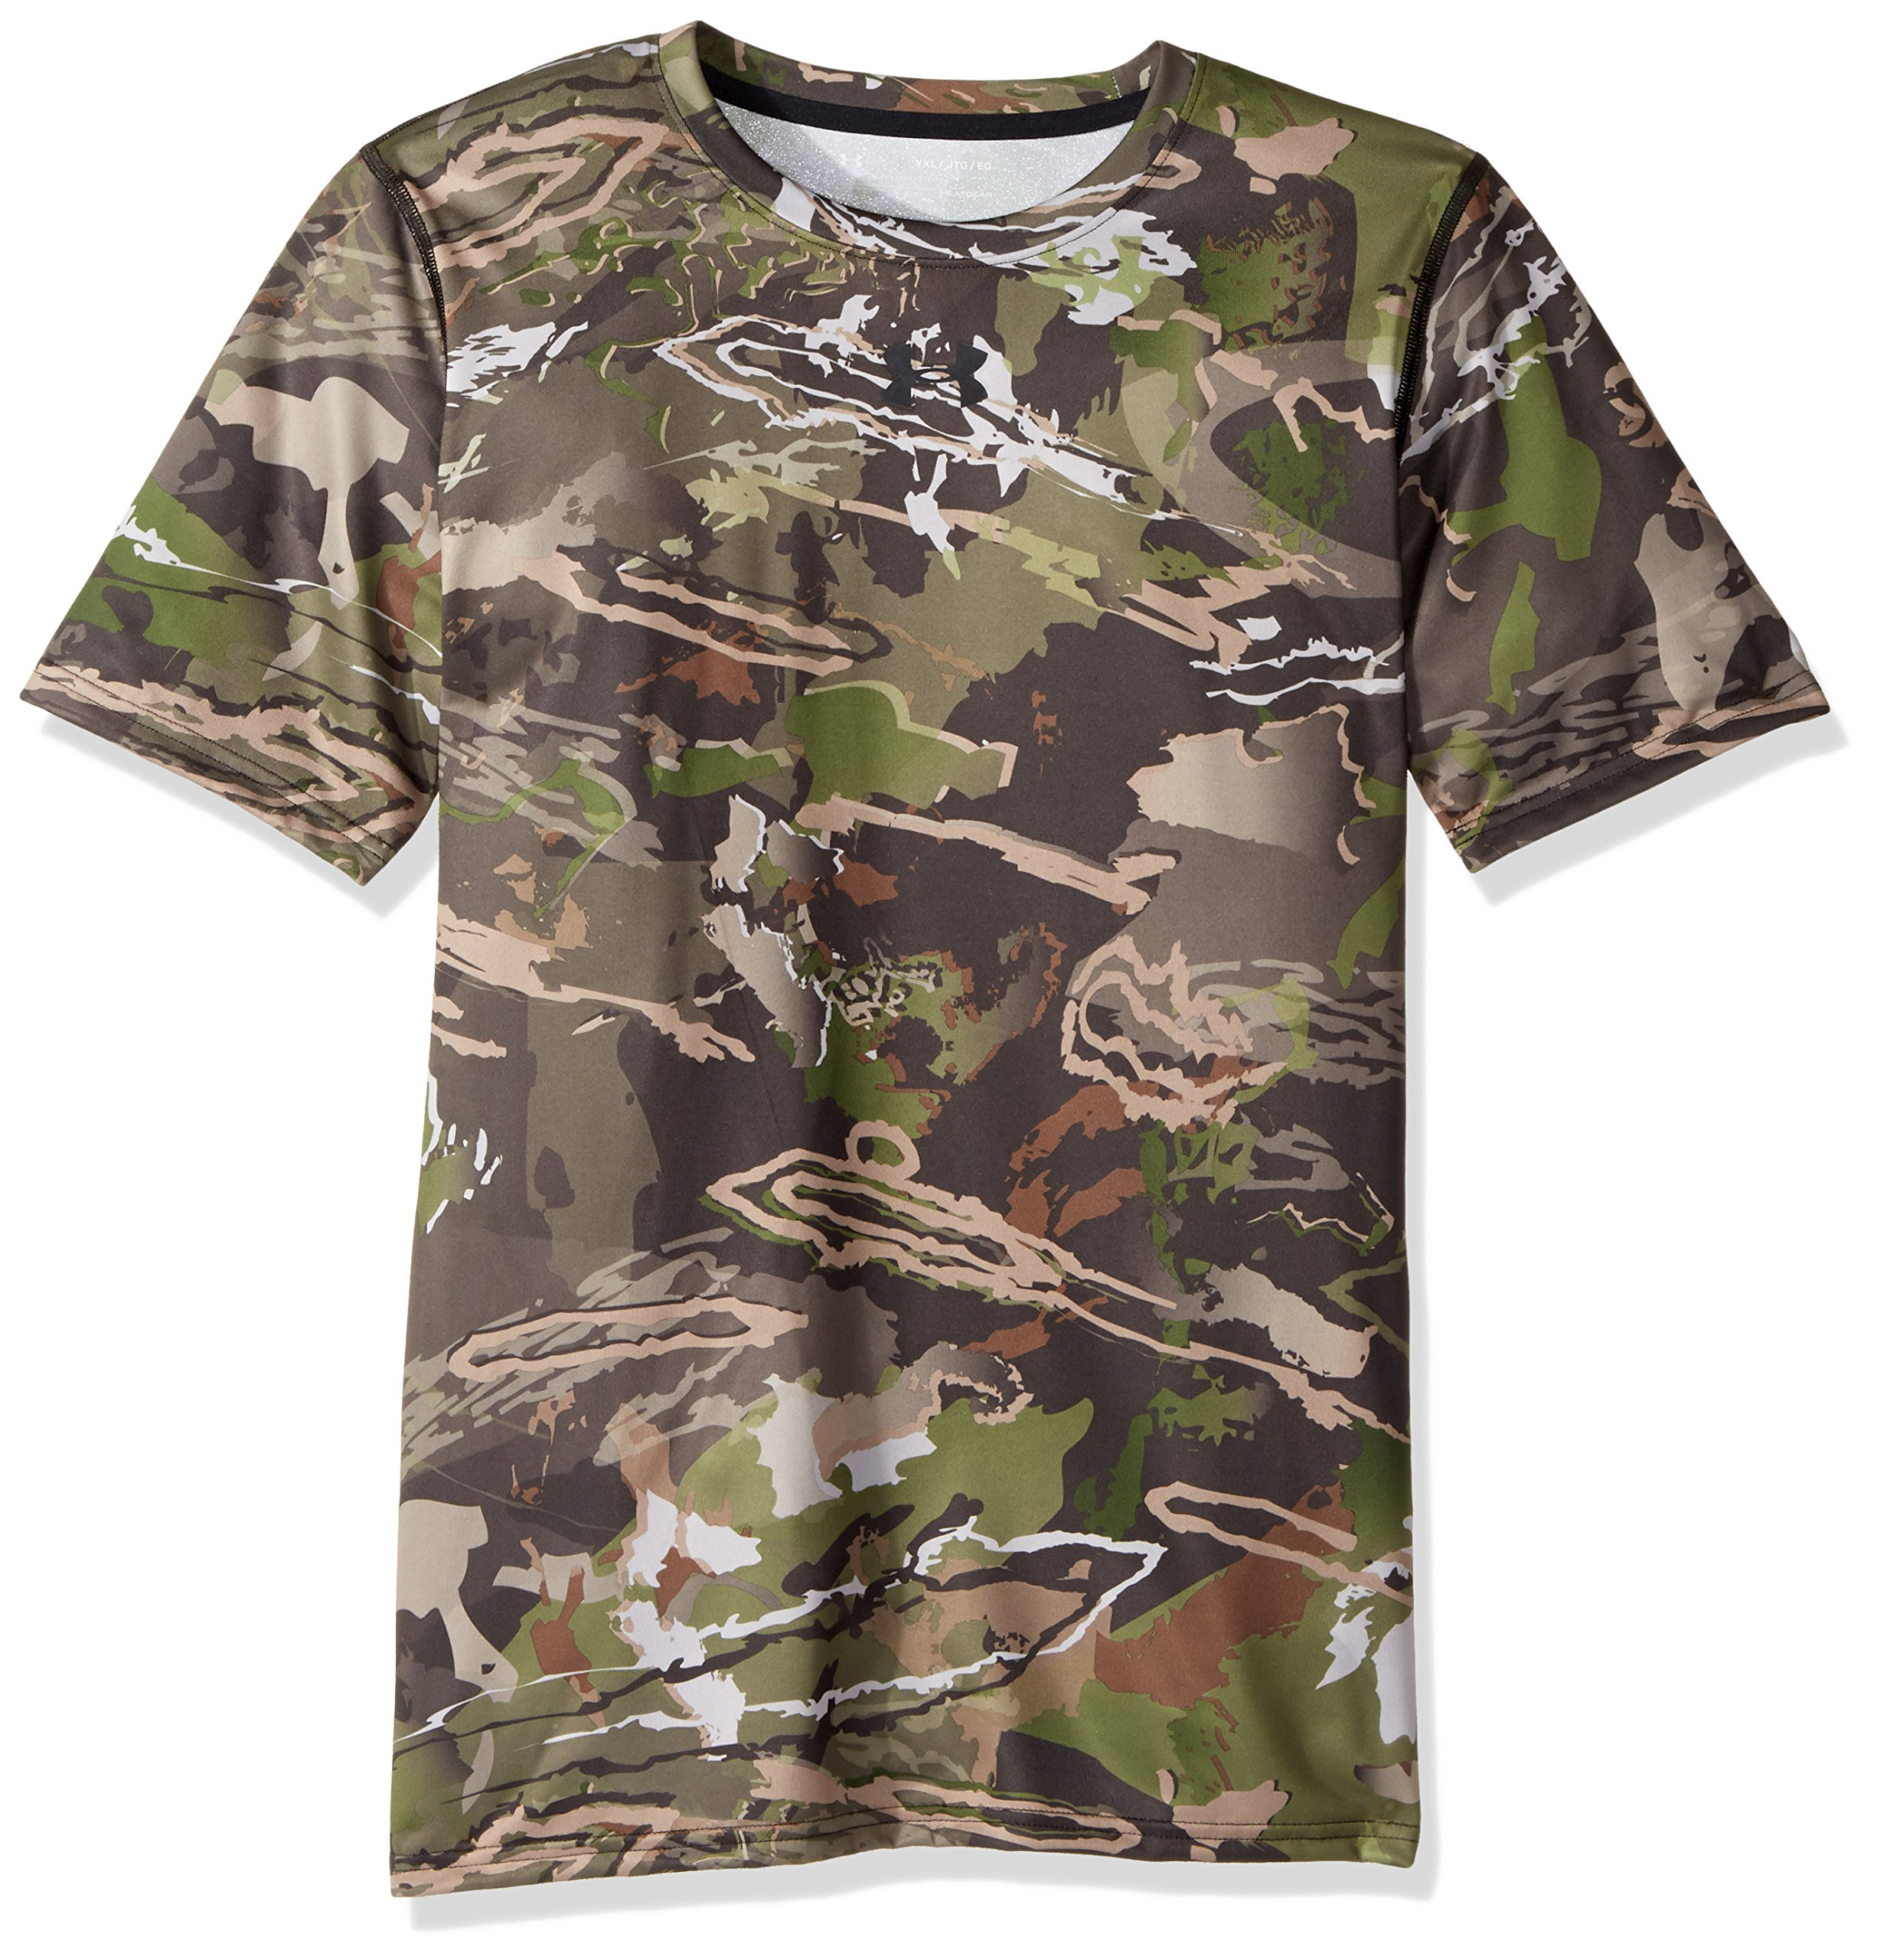 Under Armour Boys Scent Control Tech Short Sleeve Top,Ridge Reaper Camo Fo /Black, Youth X-Small by Under Armour